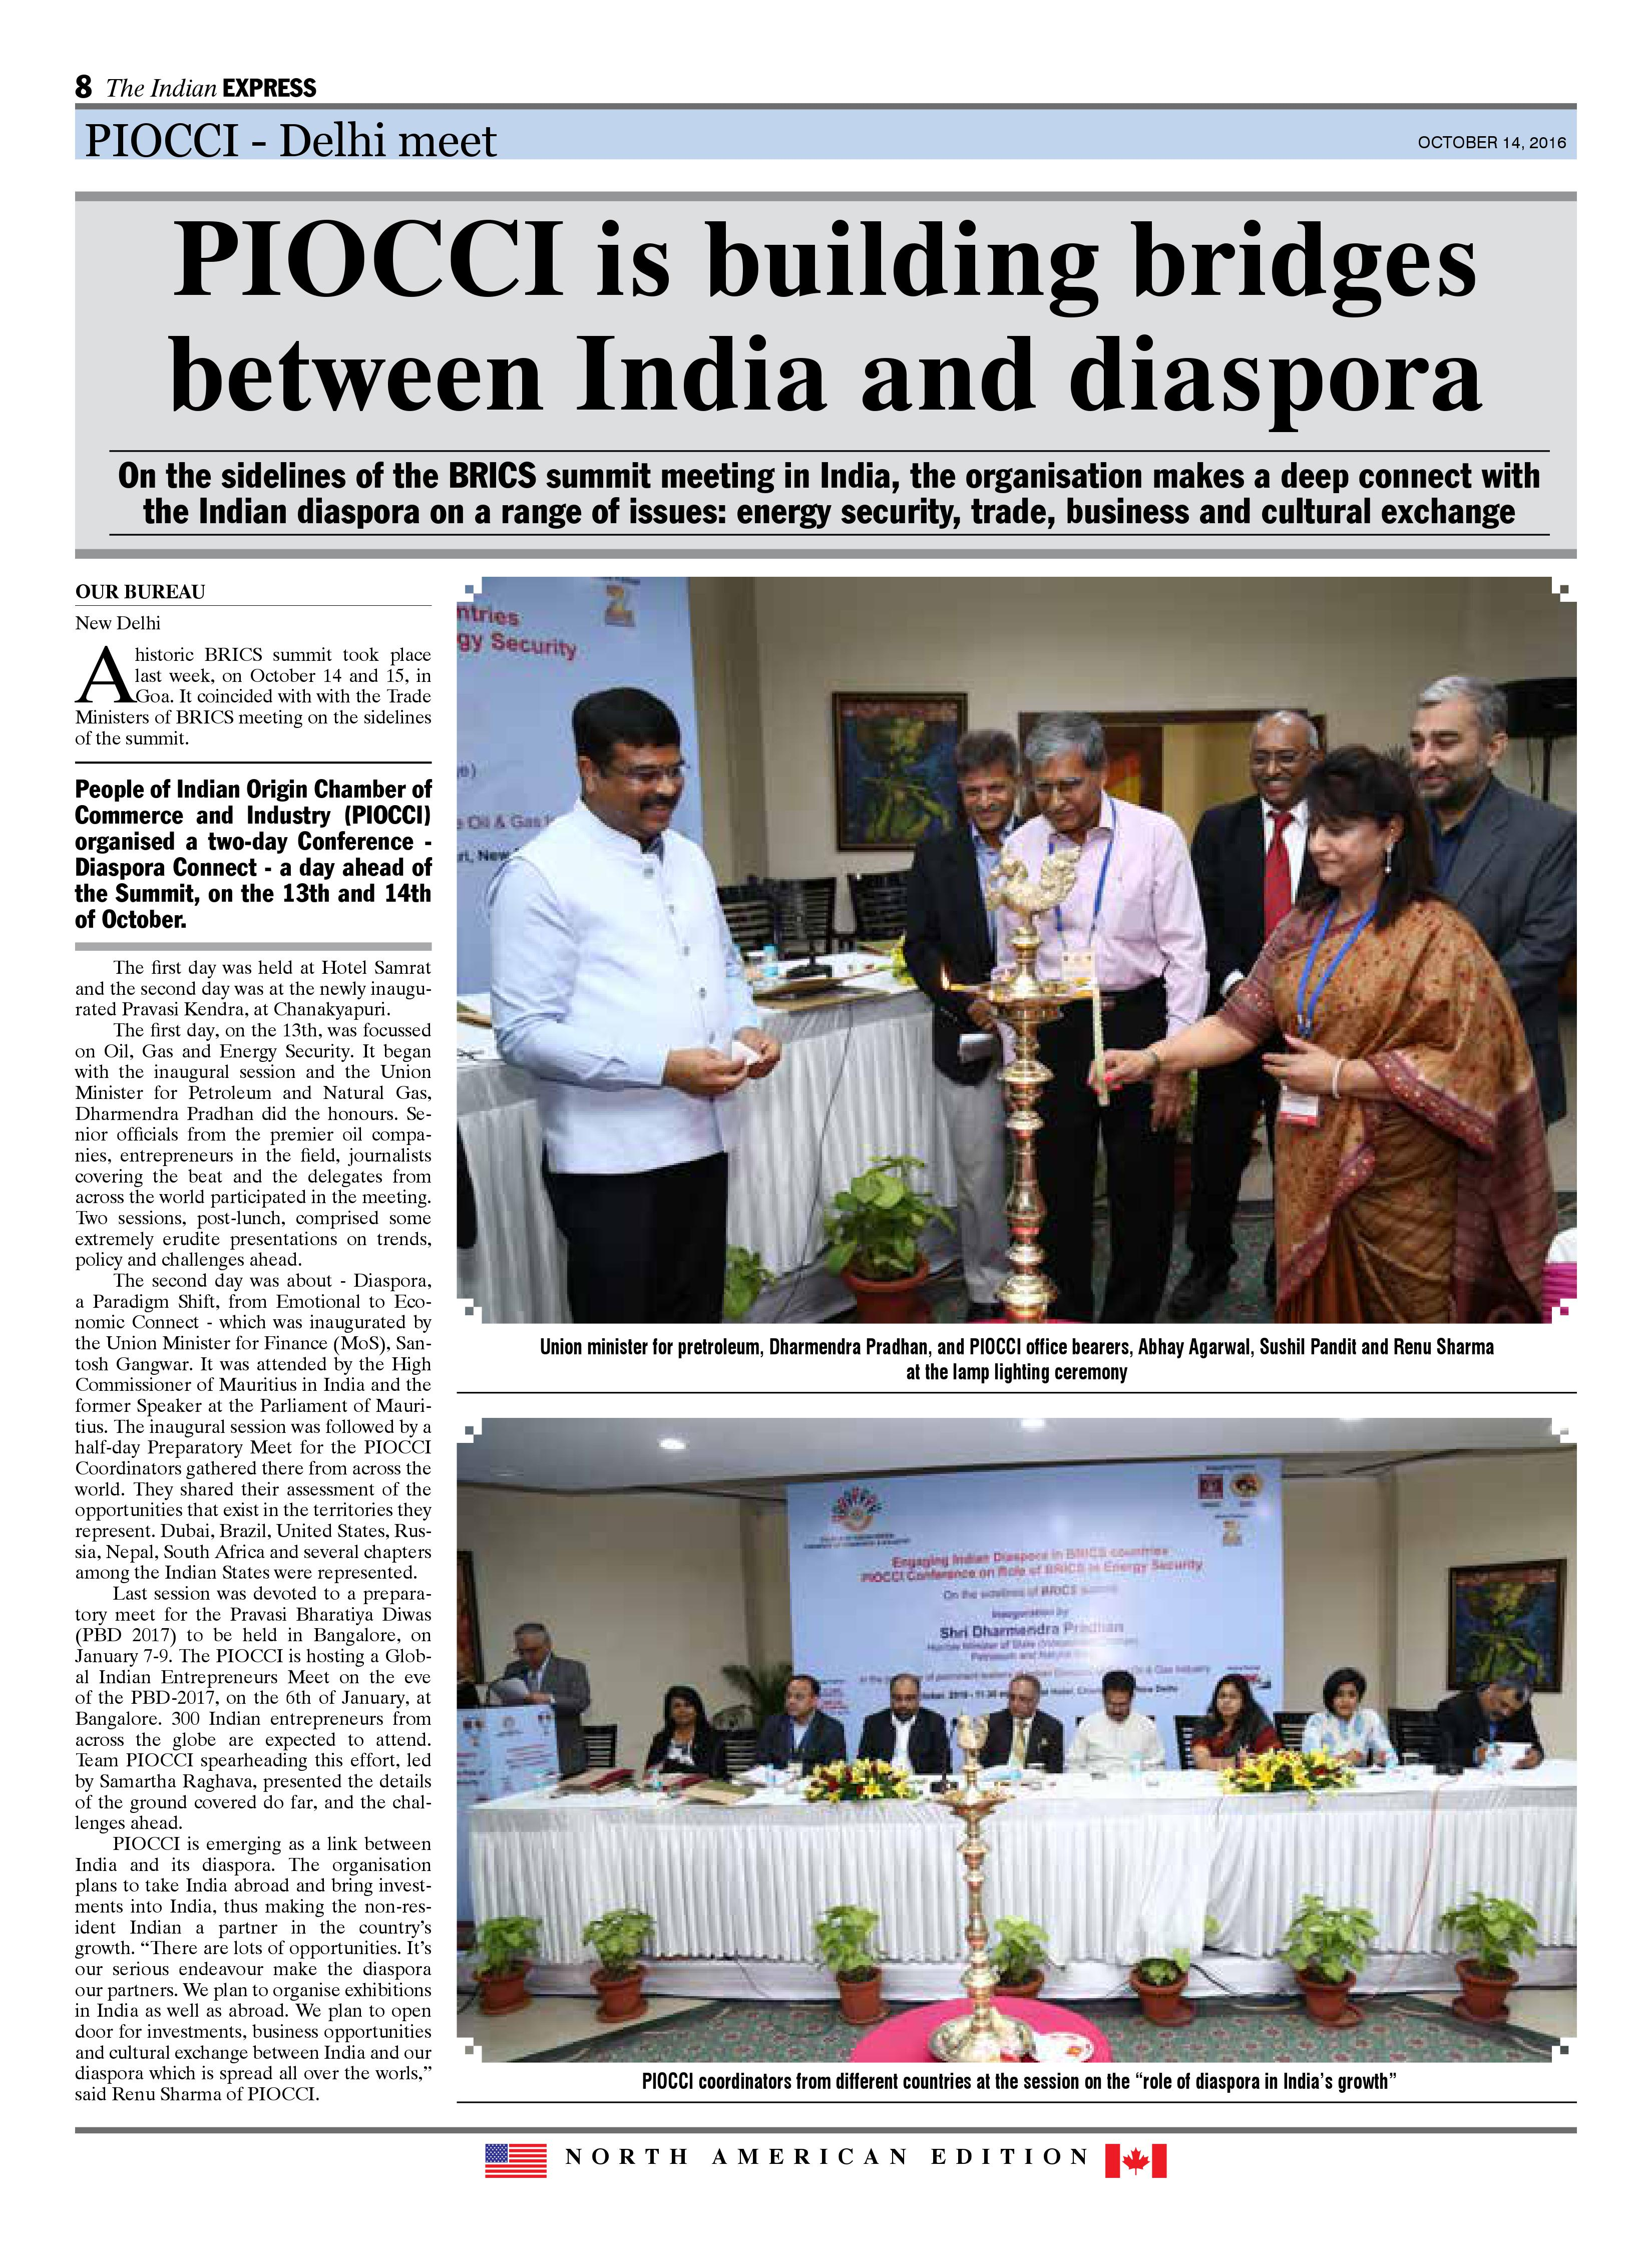 The Indian Express - North American Edition Coverage on PIOCCI Delhi Meet